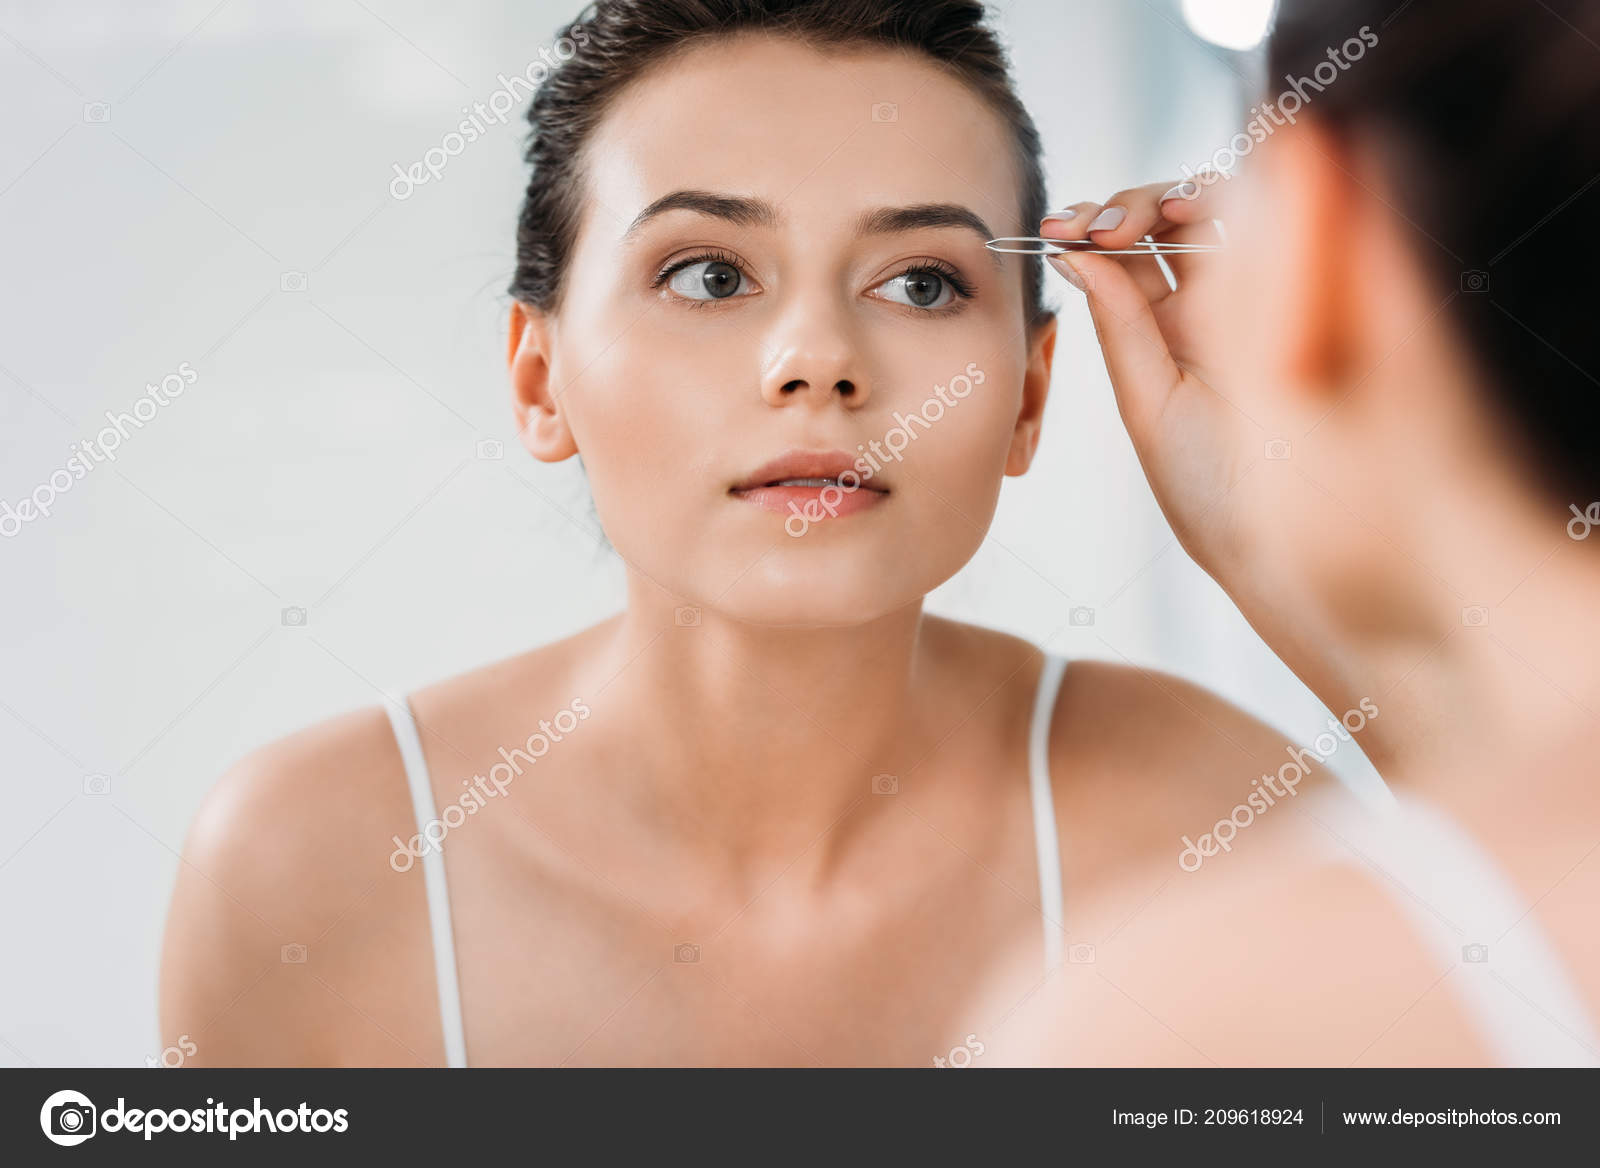 Selective Focus Girl Correcting Eyebrows Tweezers Looking Mirror